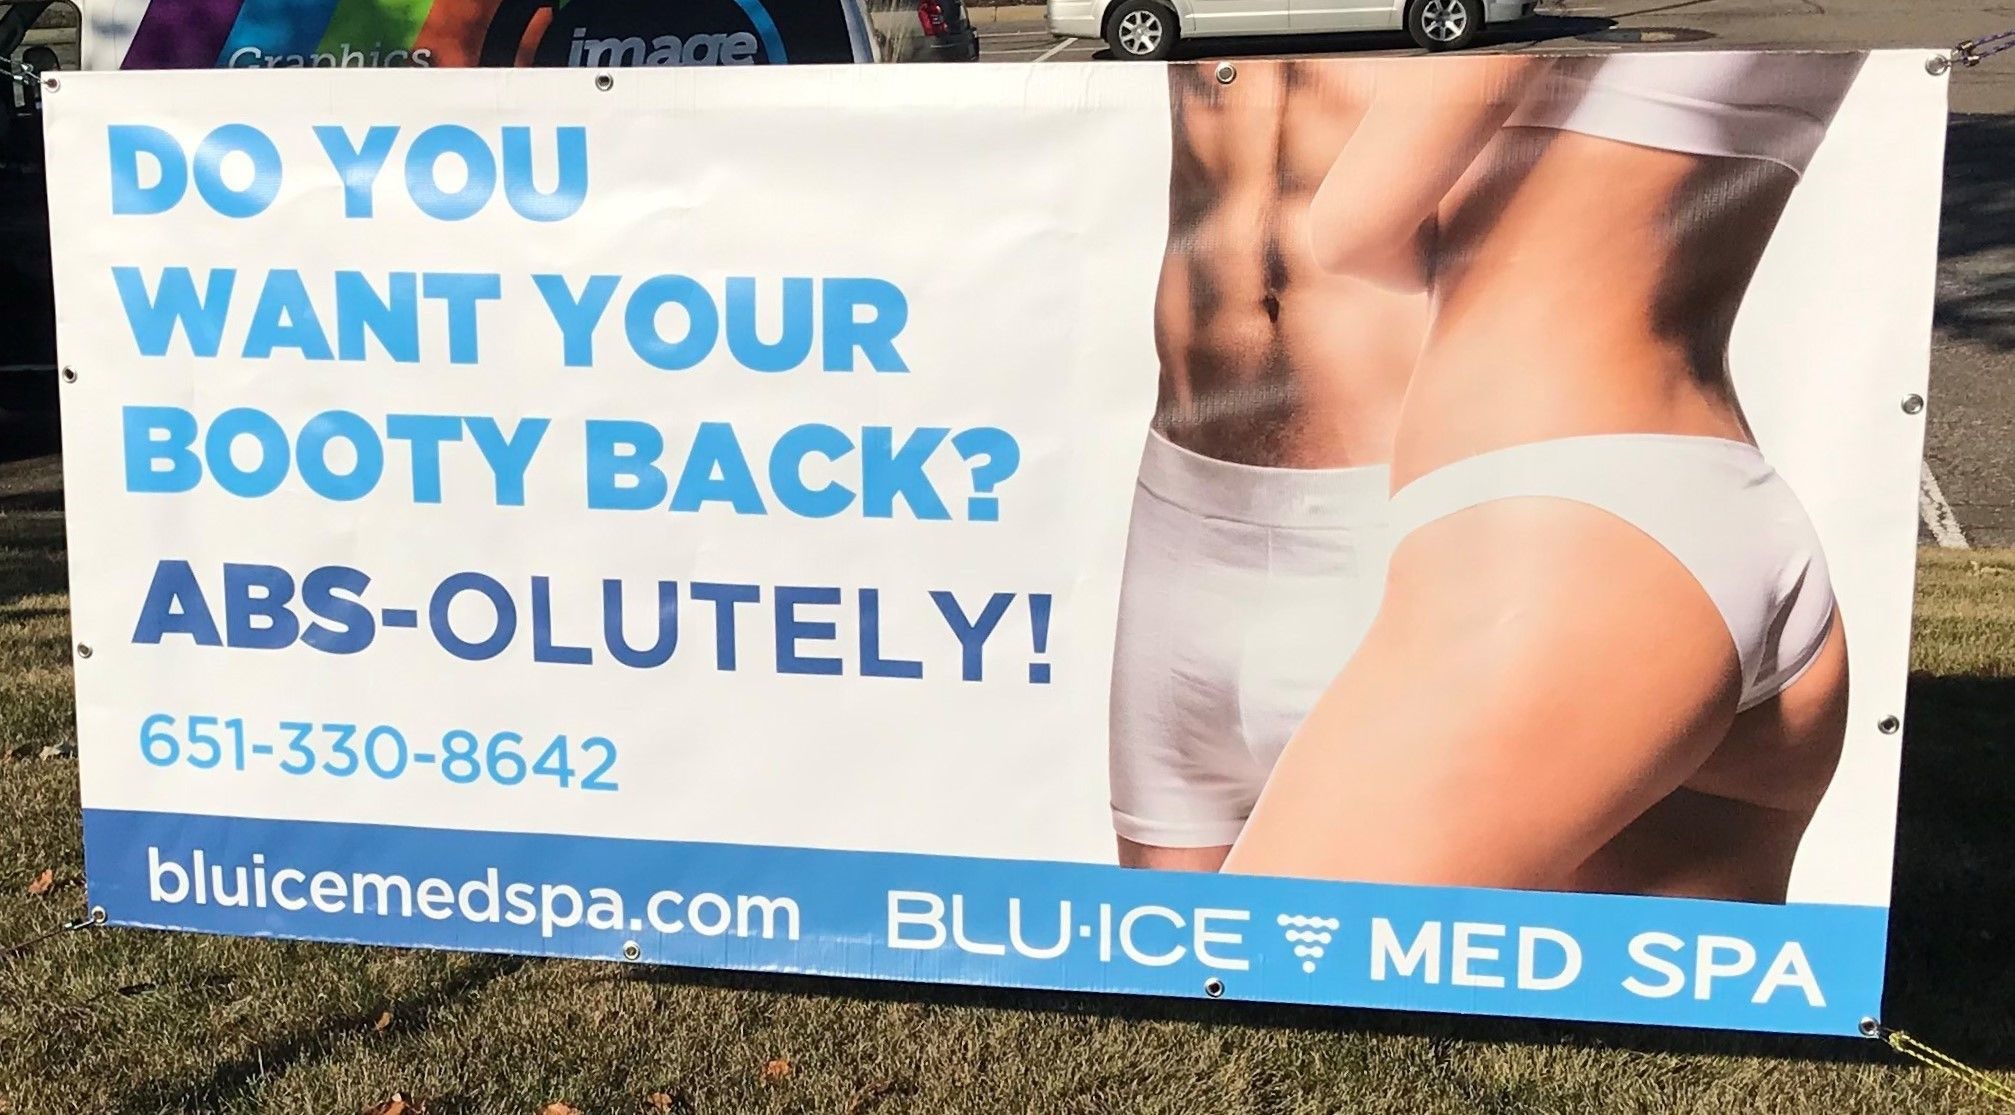 Fabric & Vinyl Outdoor Banners | Exterior & Outdoor Signage | Gyms, Health Clubs, Fitness Facilities | Woodbury, MN